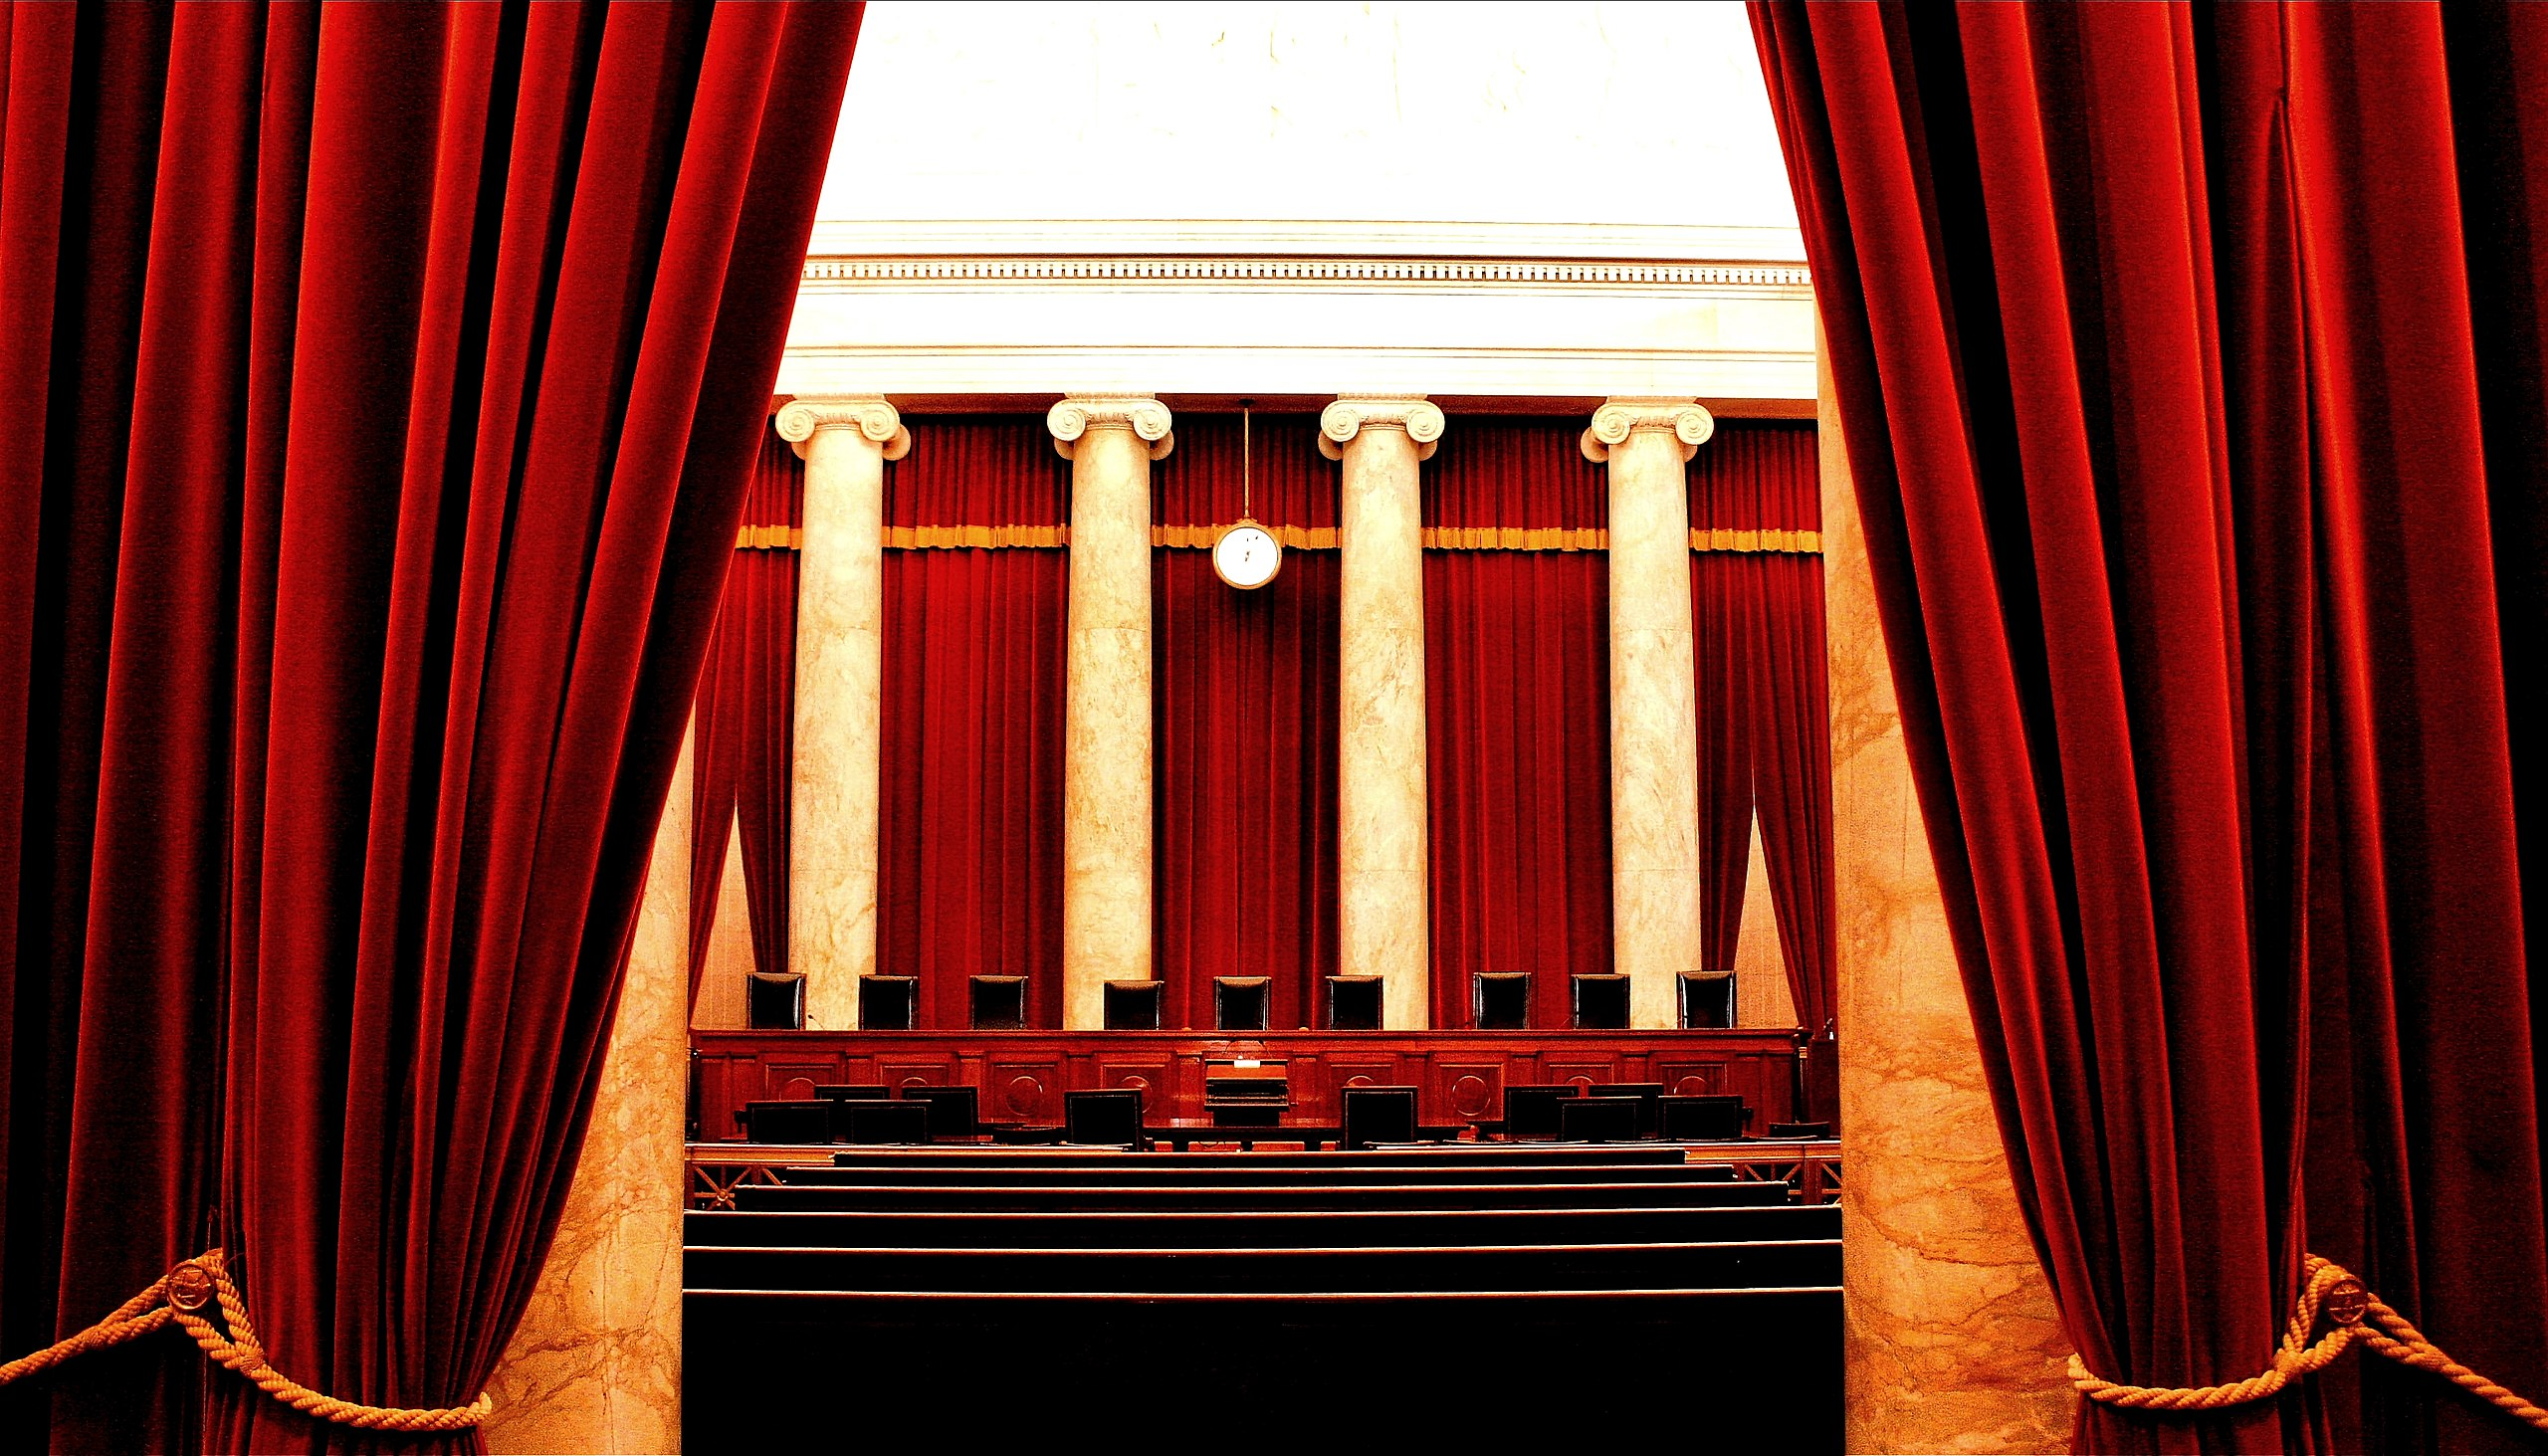 2560px-Inside_the_United_States_Supreme_Court